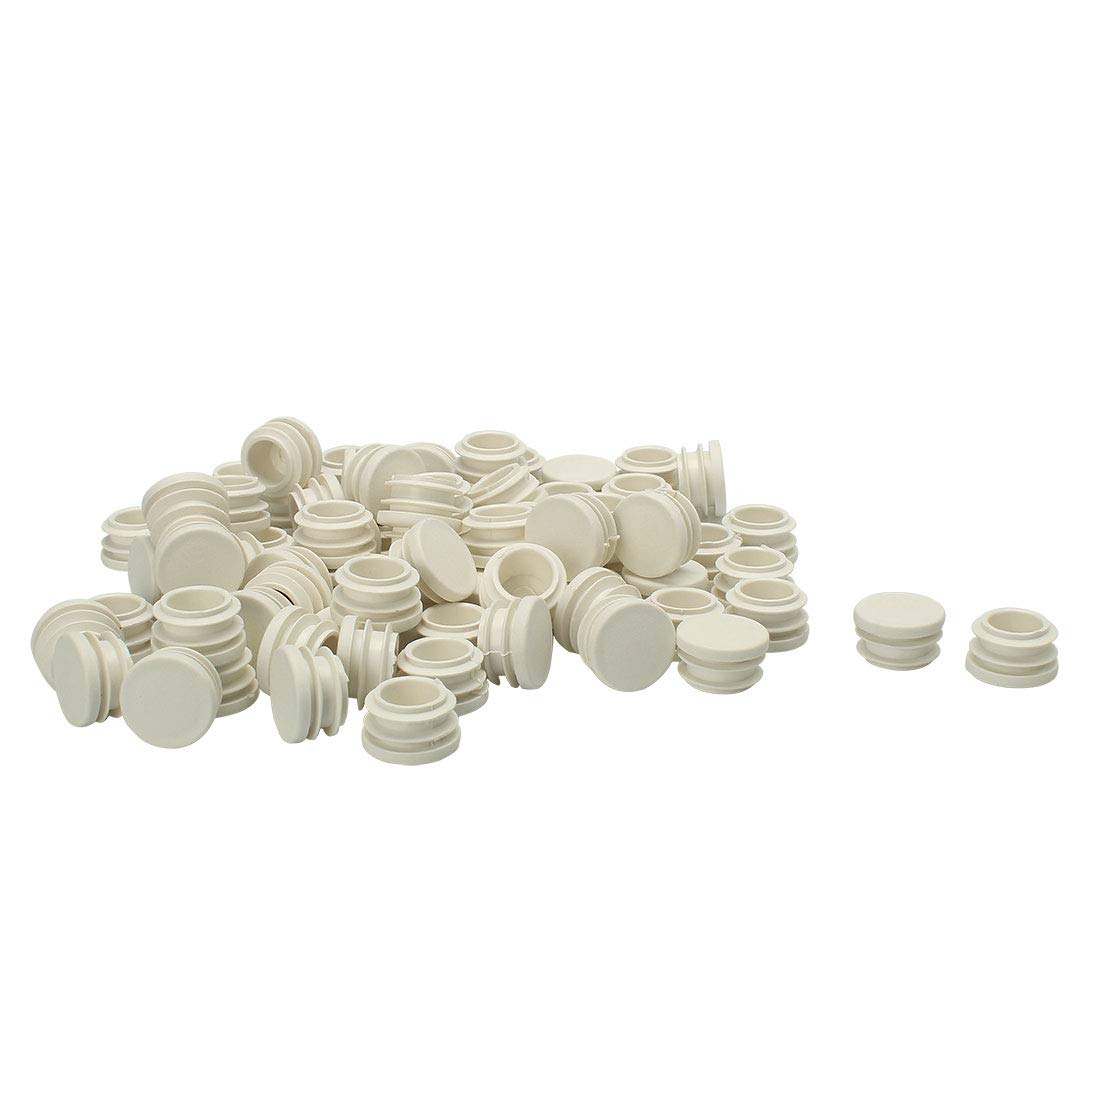 uxcell 7/8'' 22mm OD Plastic Round Ribbed Tube Inserts Pipe End Cover Cap White 80pcs, 0.75''-0.83'' Inner Dia, Furniture Chair Table Feet Floor Protector